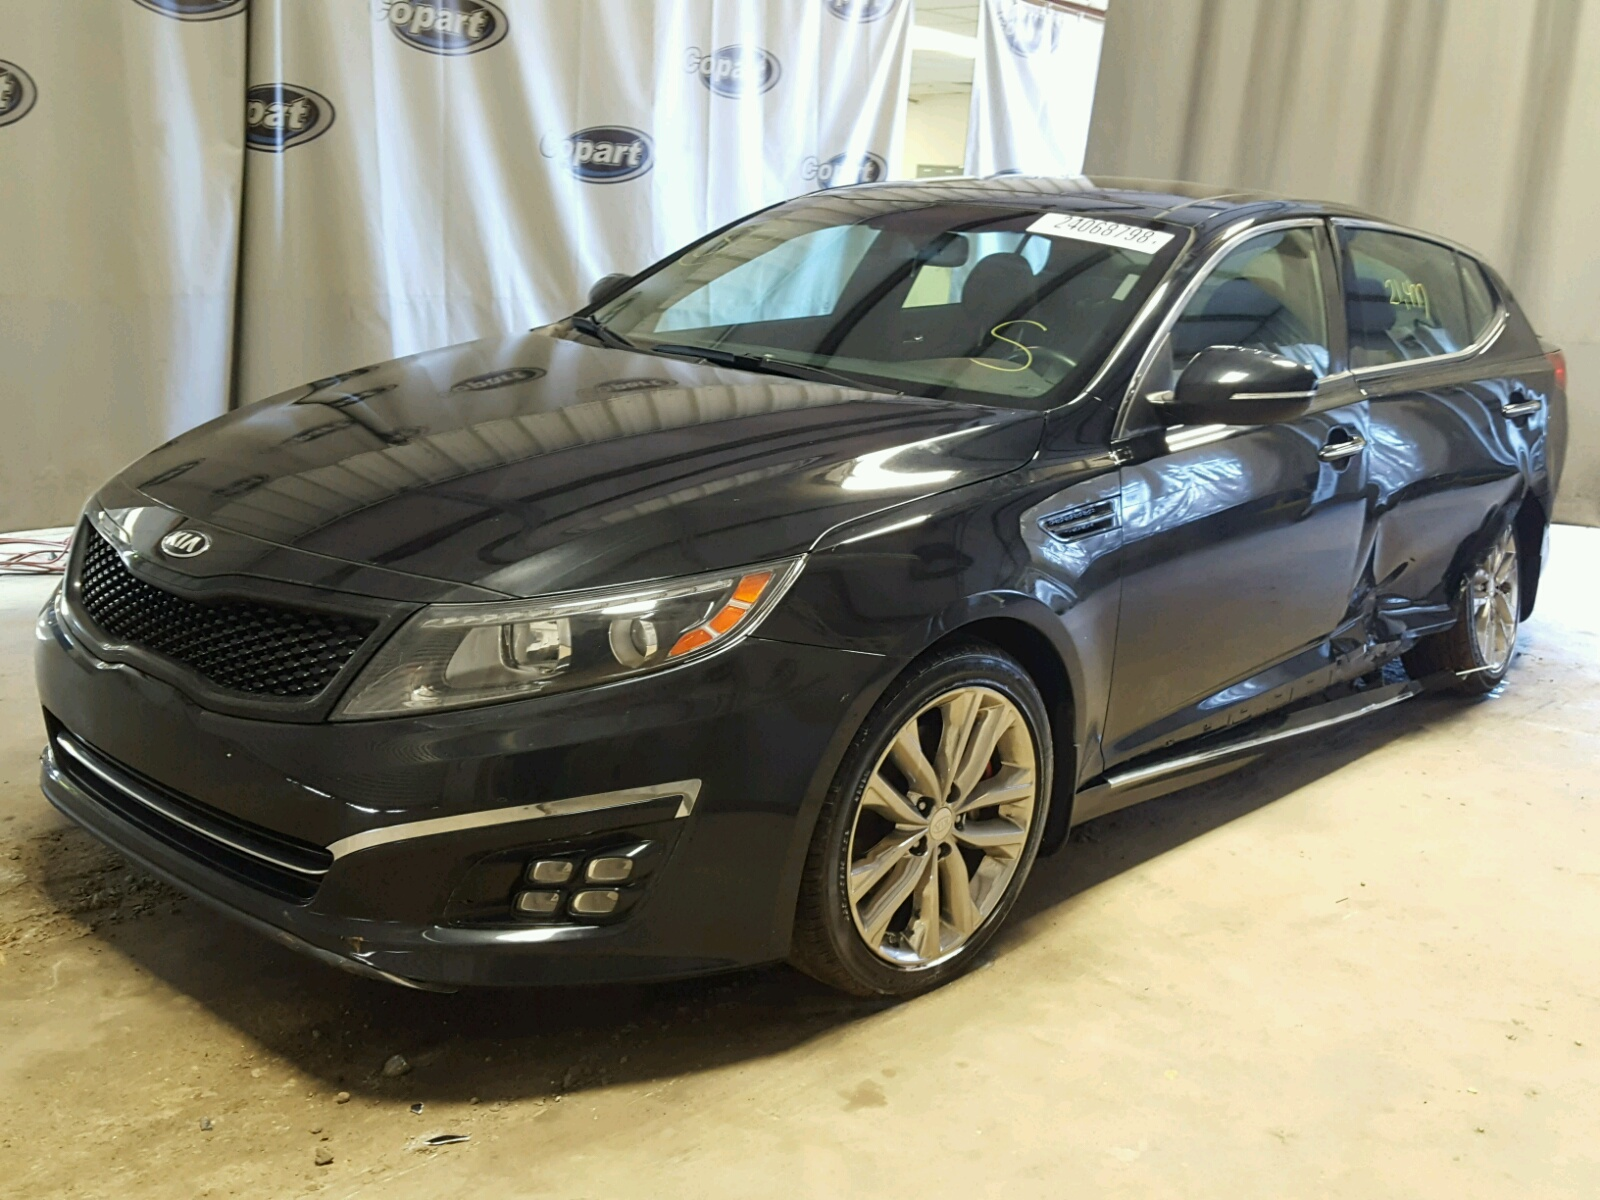 lot sx auto baltimore optima kia on view online auctions en sale carfinder rear copart gray md in of title certificate